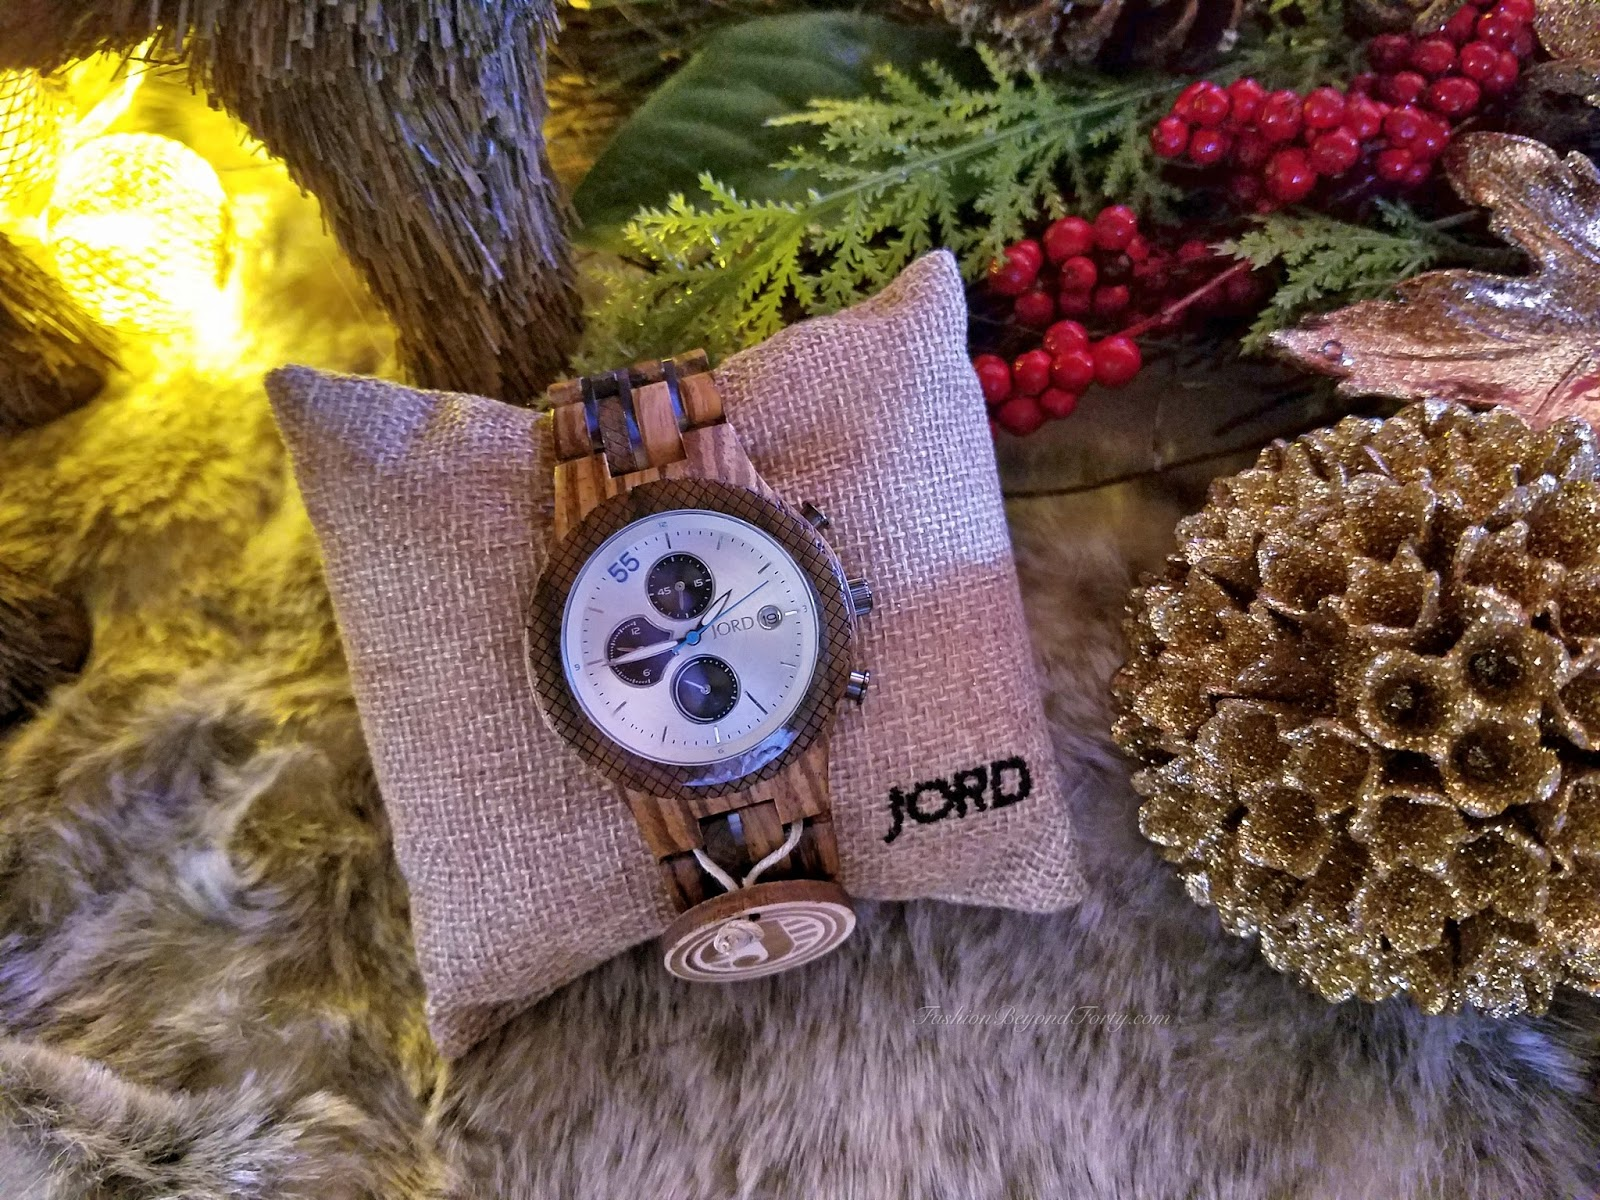 The Absolutely Best In Holiday Gifts, Jord Wood Watches, Now Offering Watch And Wood Engraving